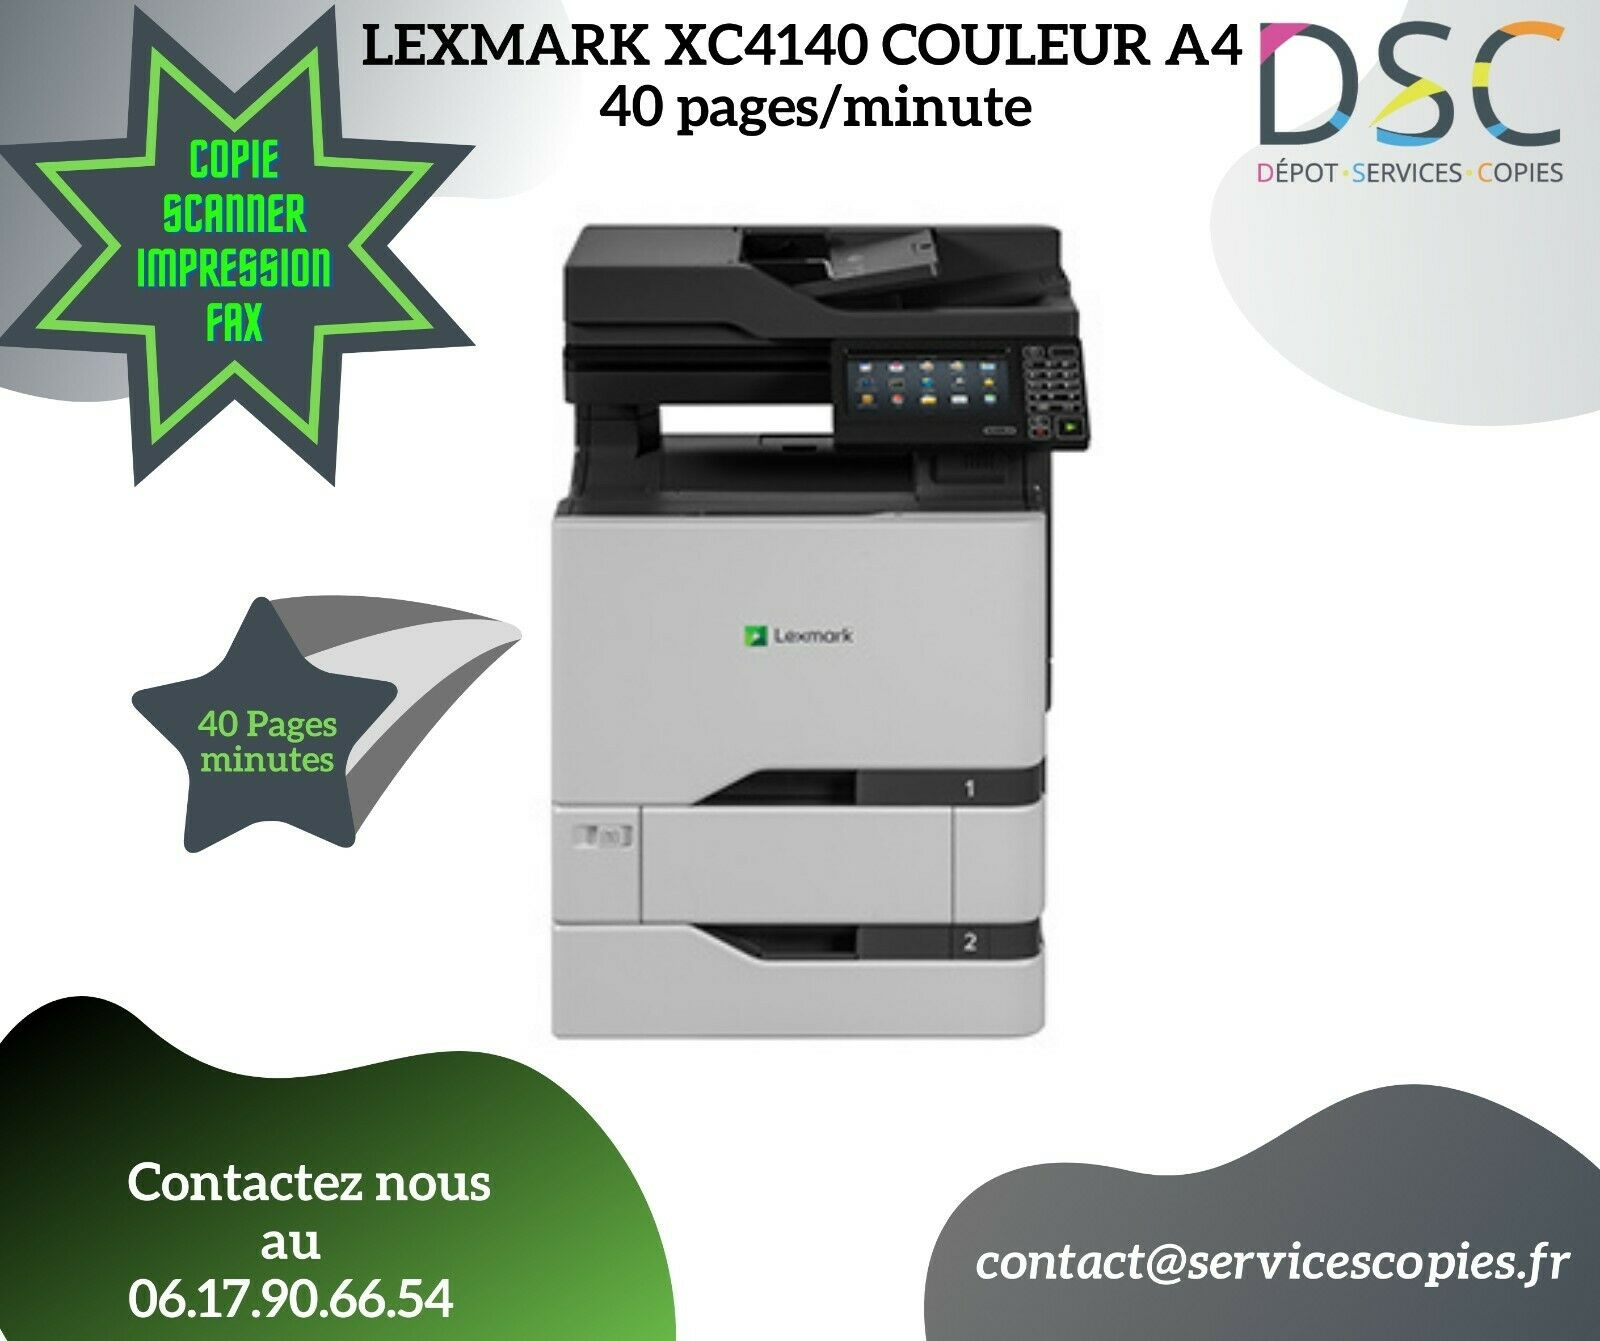 Multifonction  40 pages/minute lexmark xc4140 couleur  a4  comme neuf